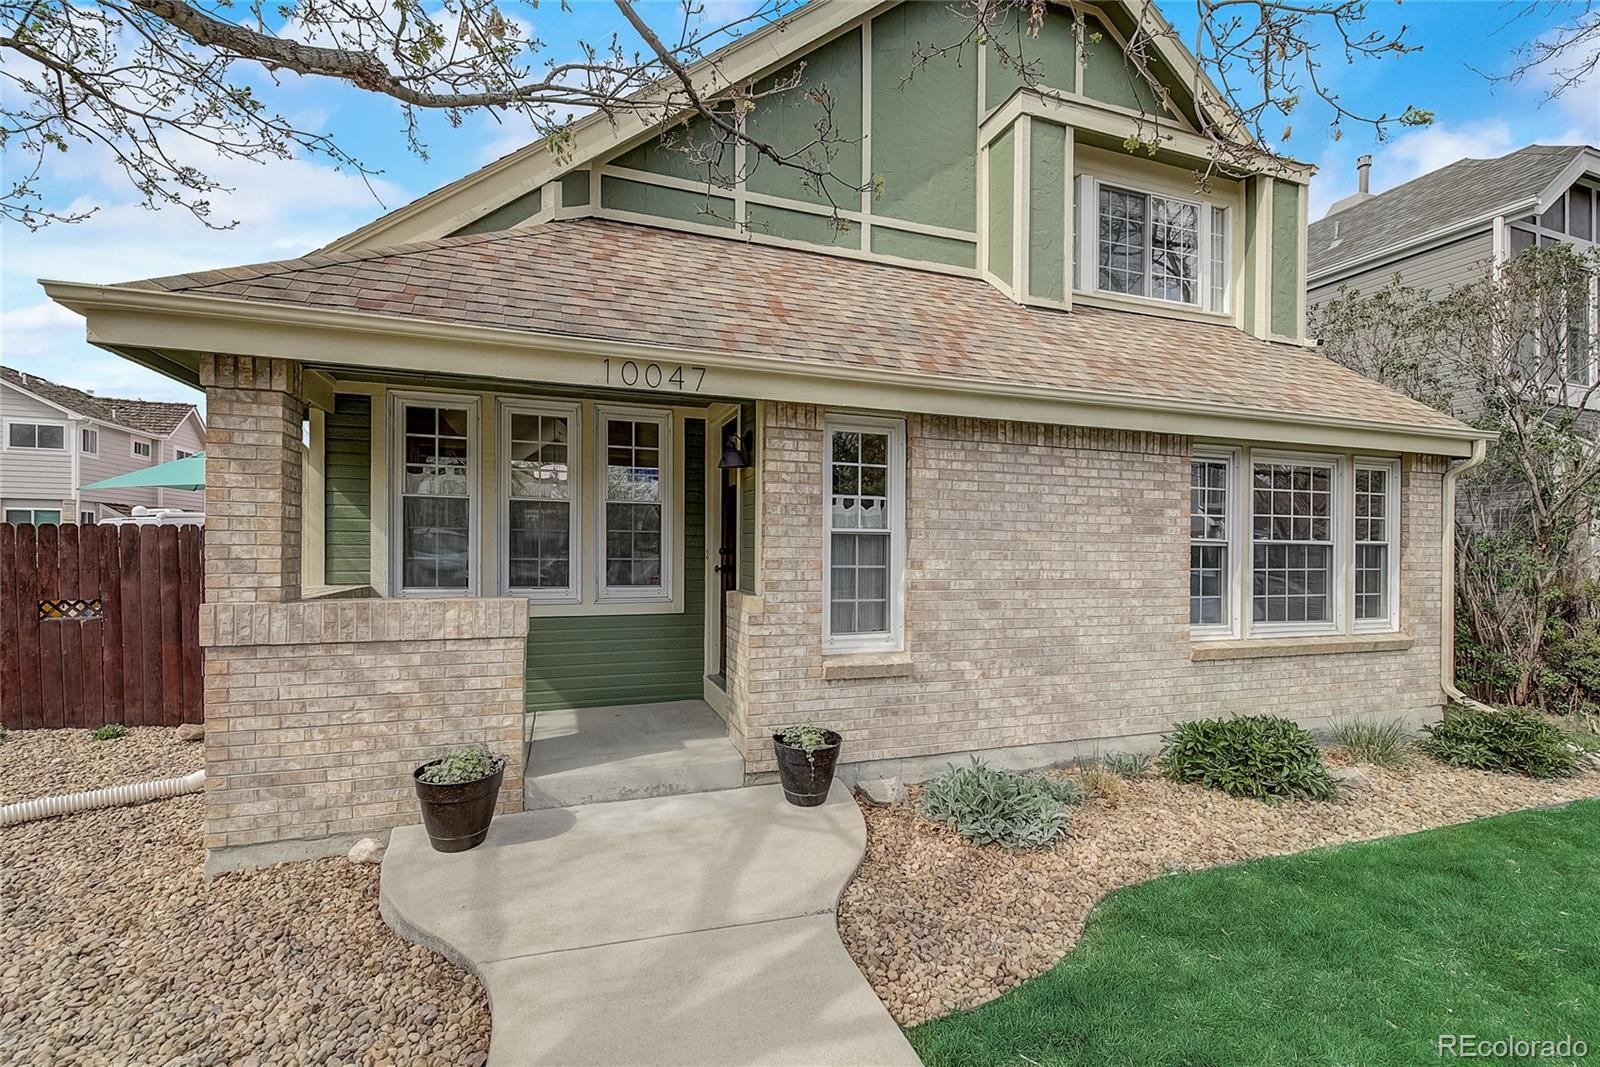 10047 W 82nd Place, Arvada, CO 80005 - #: 7857151